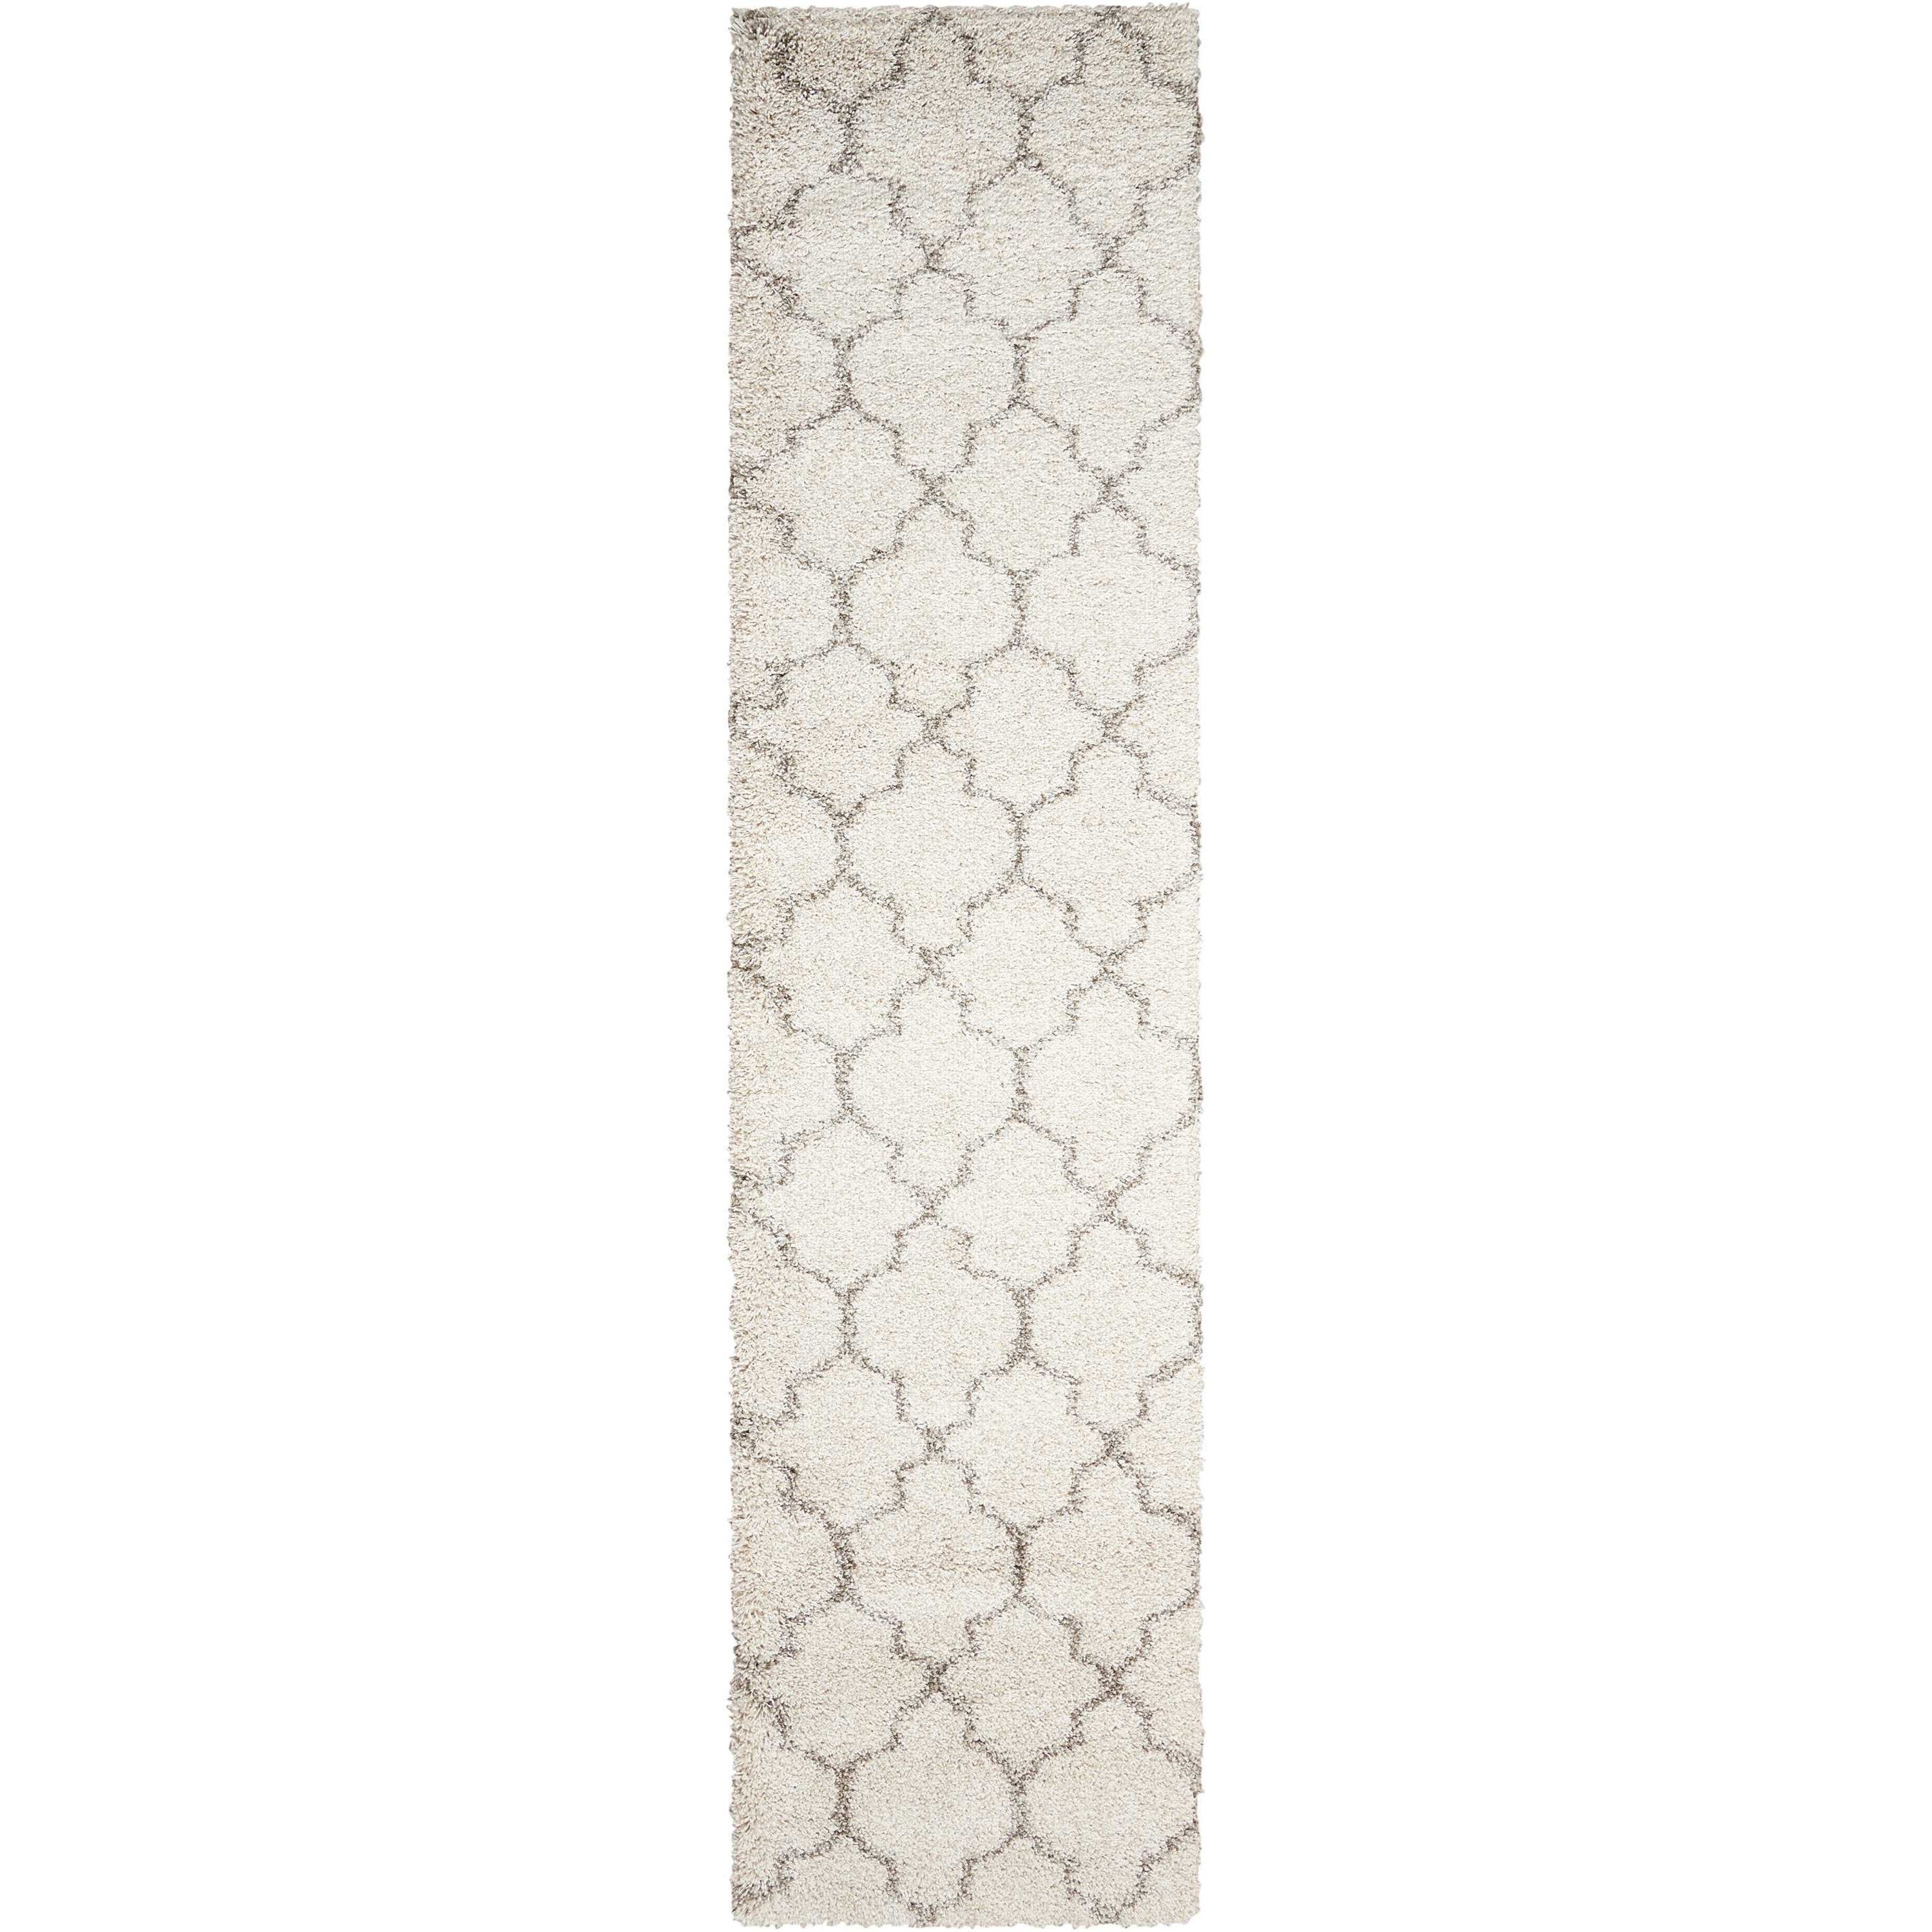 """Amore 2'2"""" x 10' Cream Runner Rug by Nourison at Home Collections Furniture"""